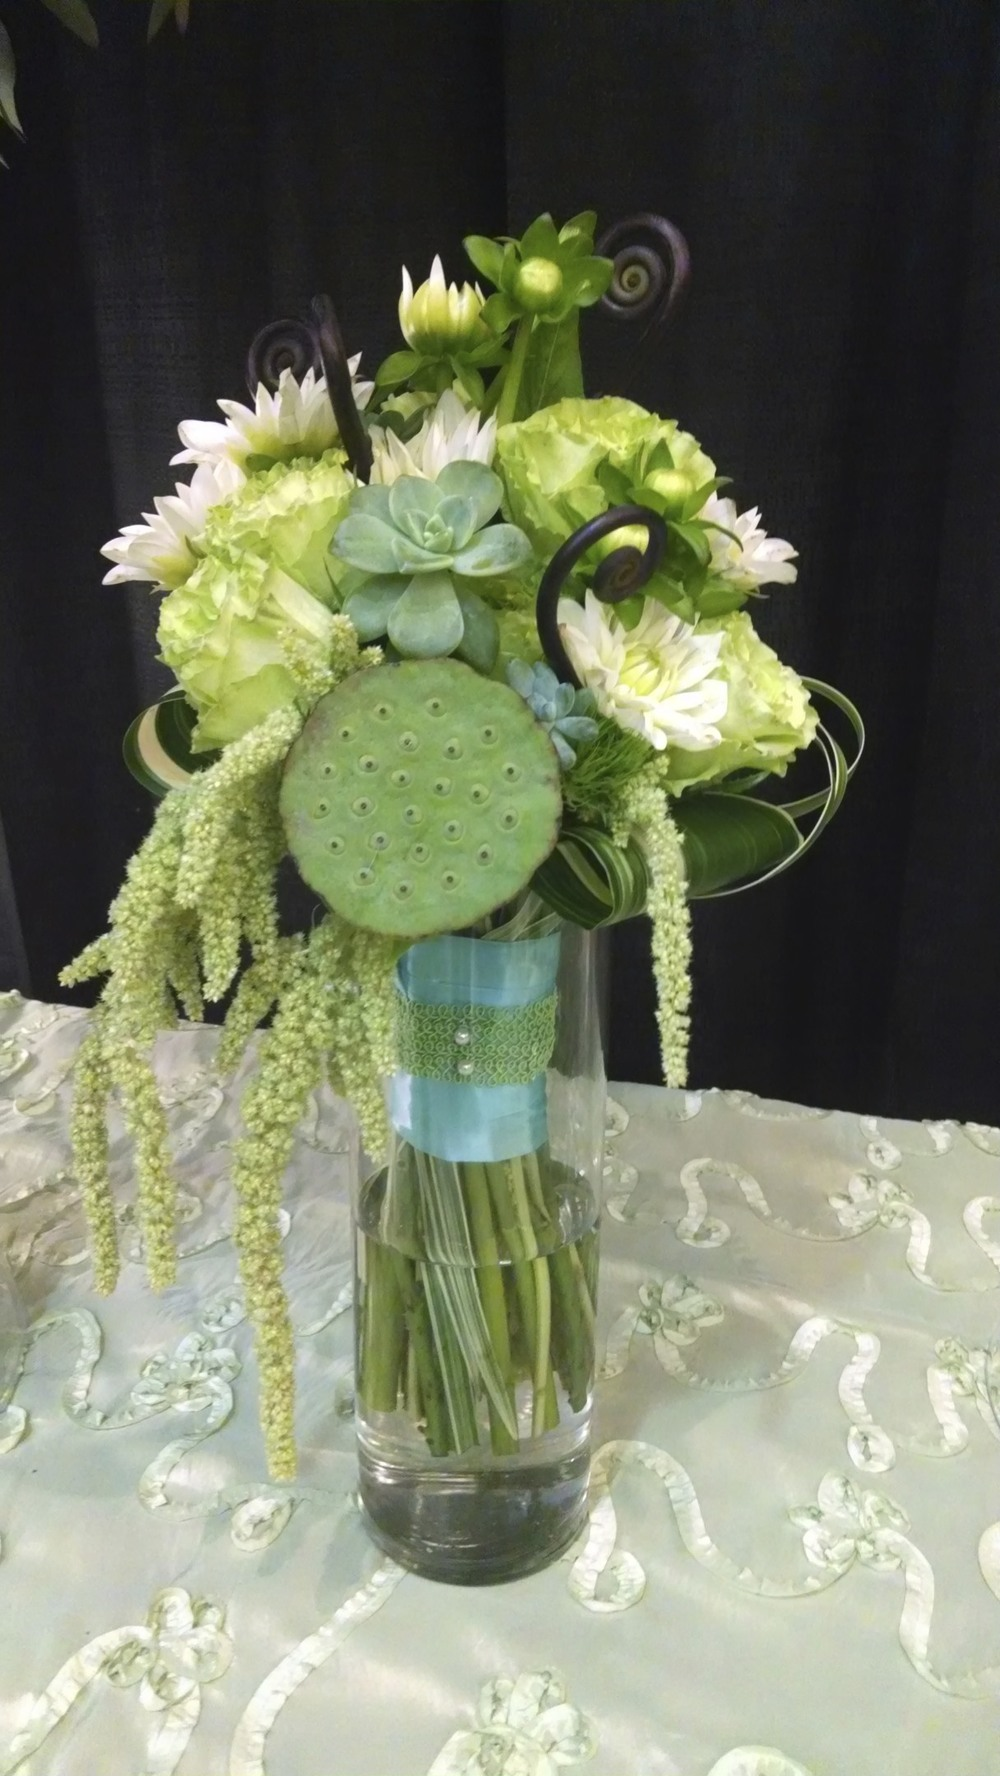 Green Lotus pods, Roses, Amaranthus, Succulents, Dahlias and fiddle-head Ferns.